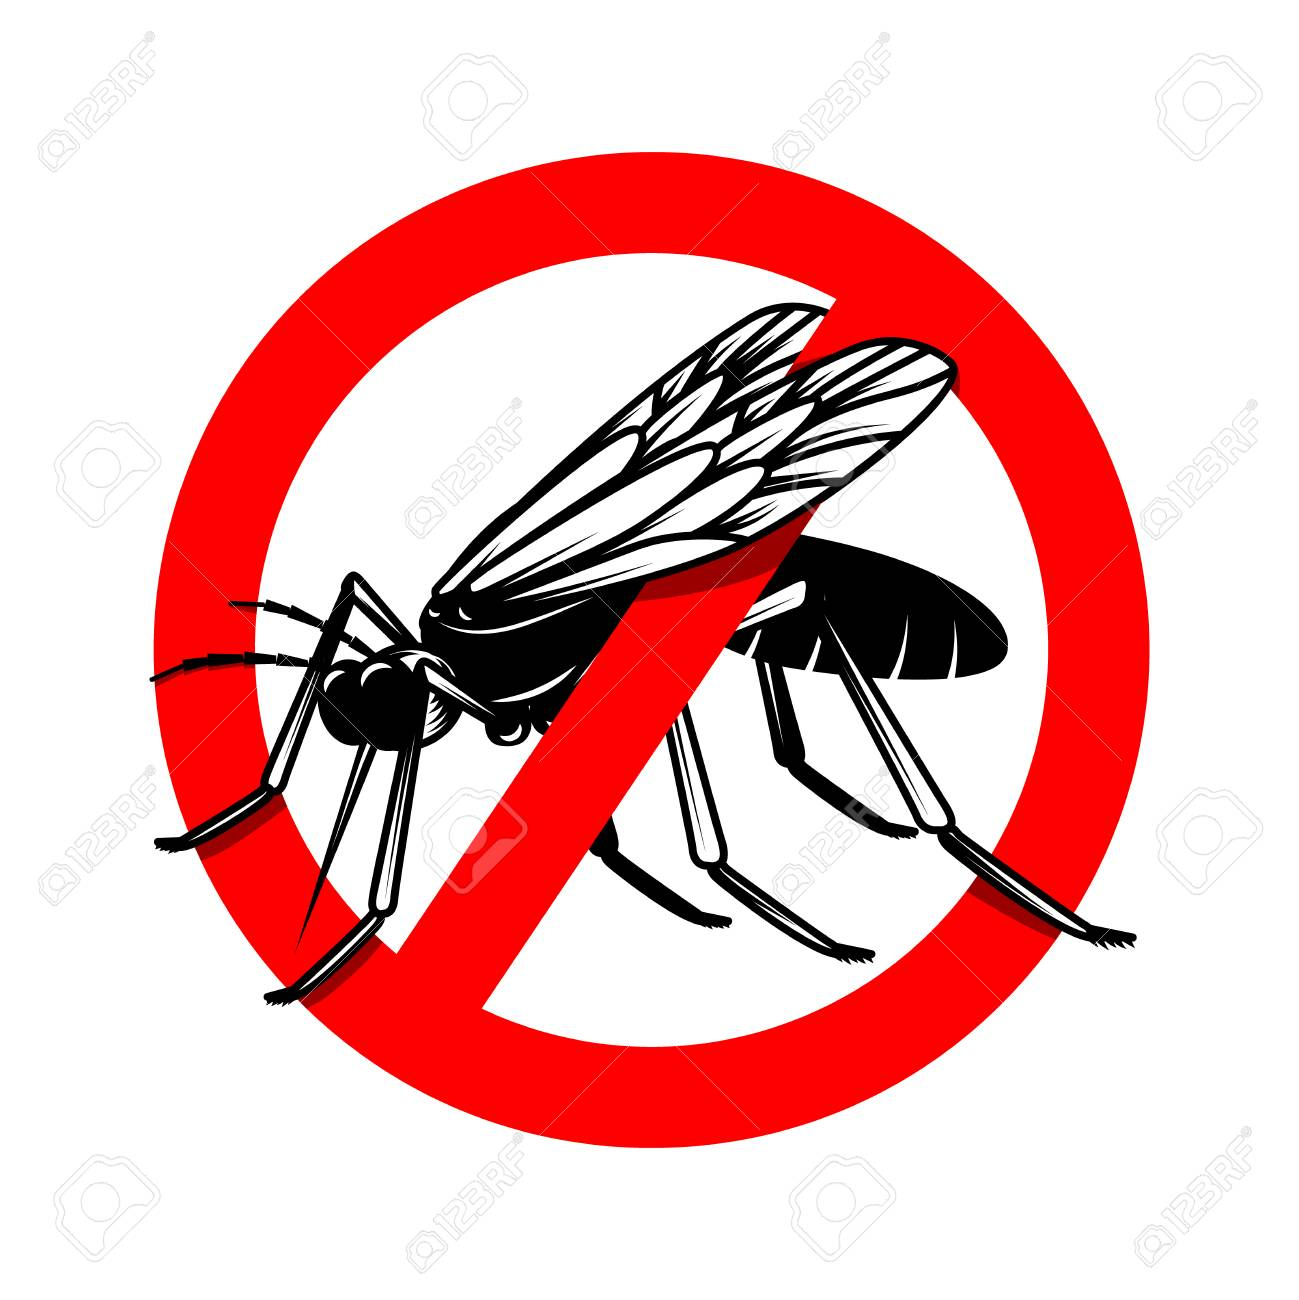 Mosquito danger sign template  Design element for poster, card,